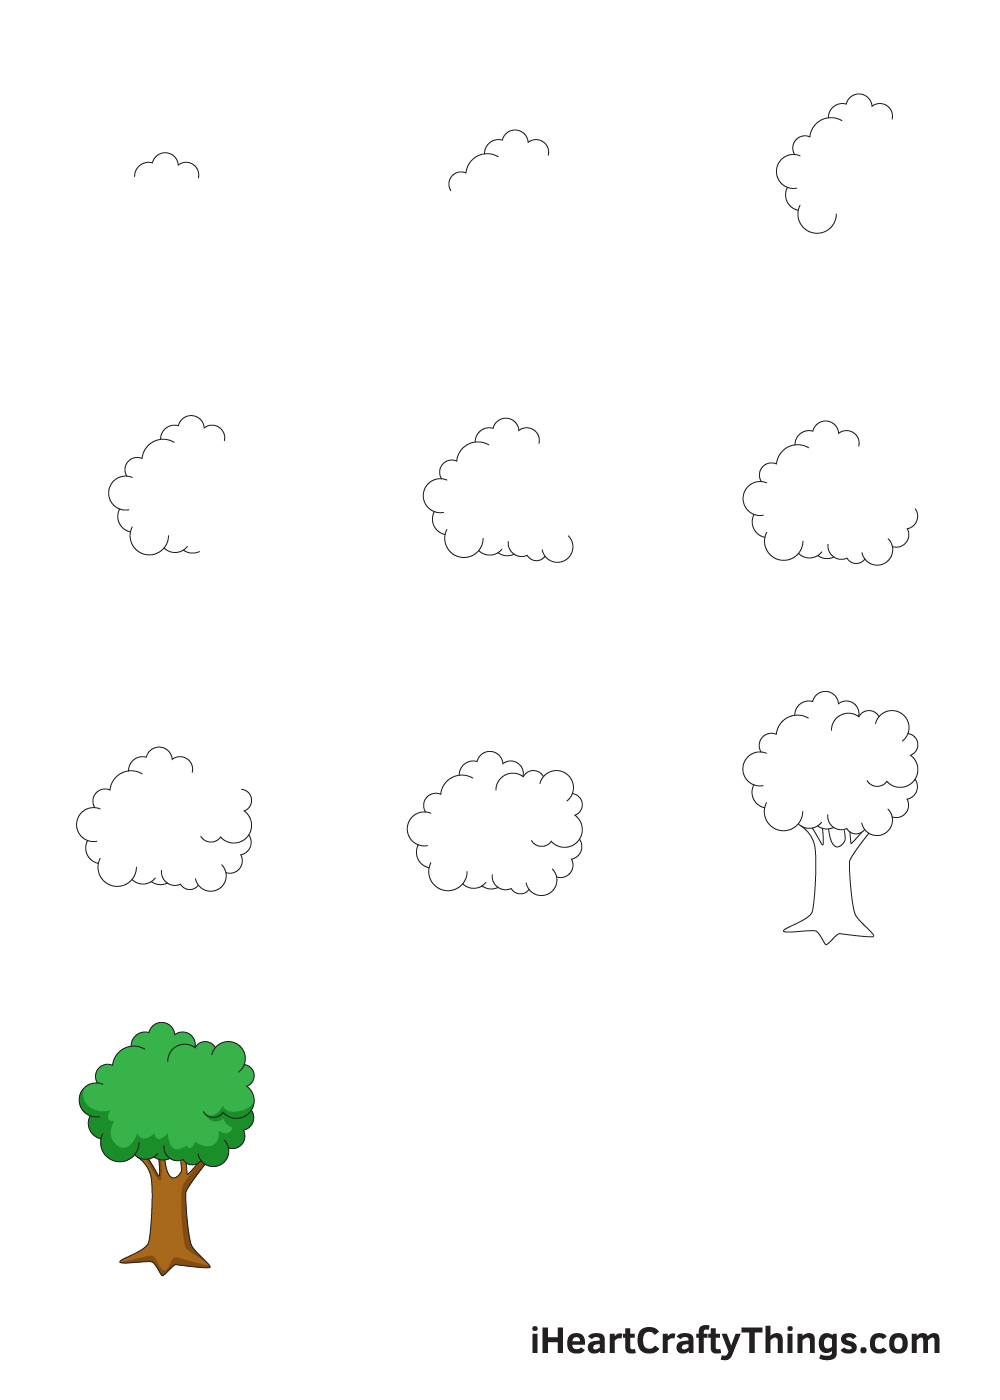 drawing tree in 9 steps